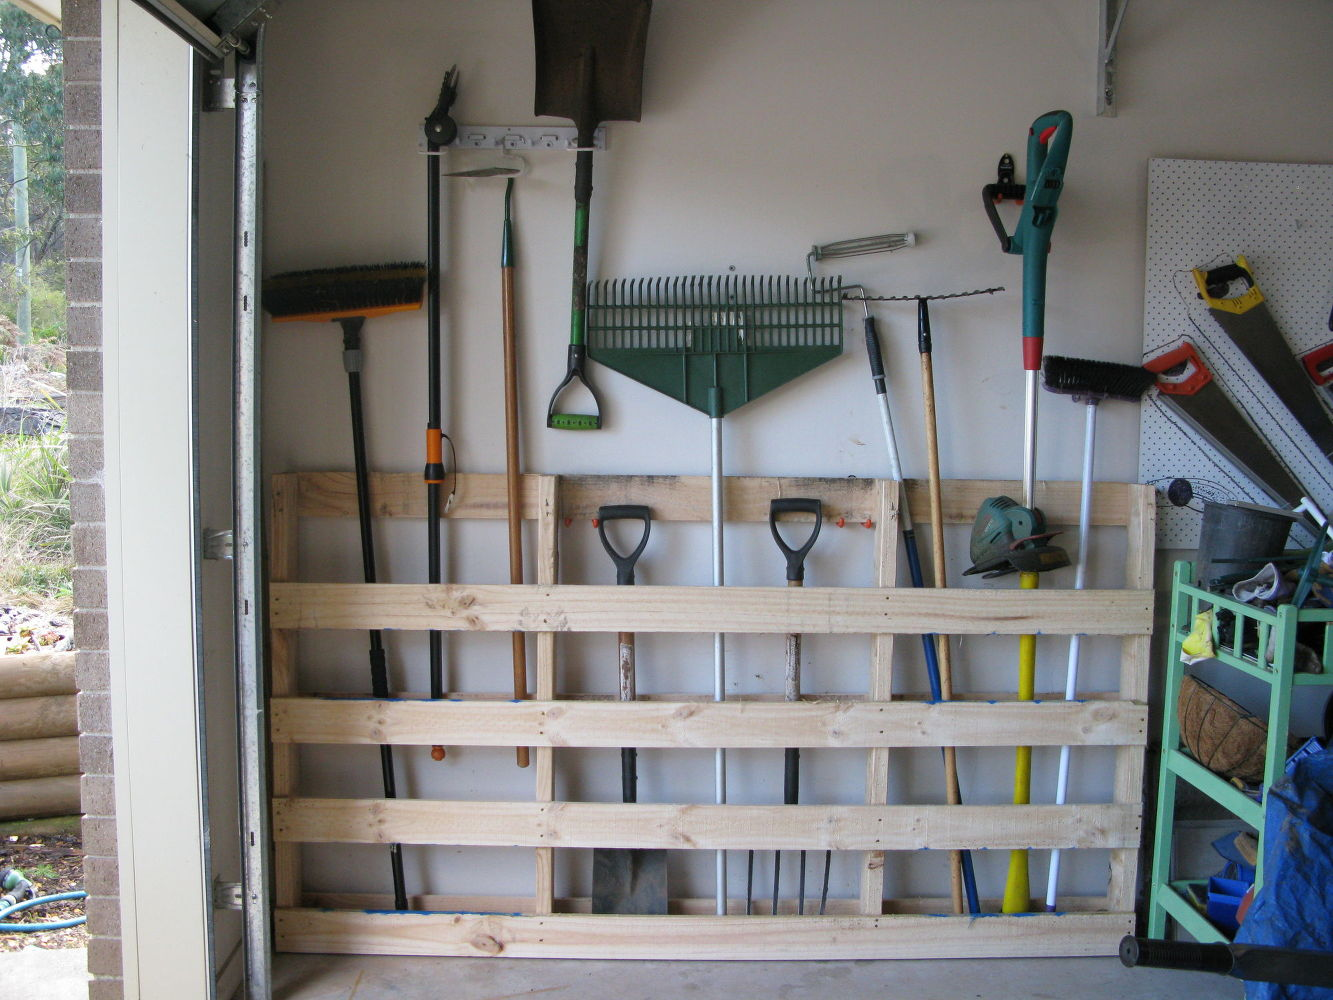 1559564709 848 garage storage ideas that will help you keep the clutter at bay - Garage Storage Ideas That Will Help You Keep The Clutter At Bay